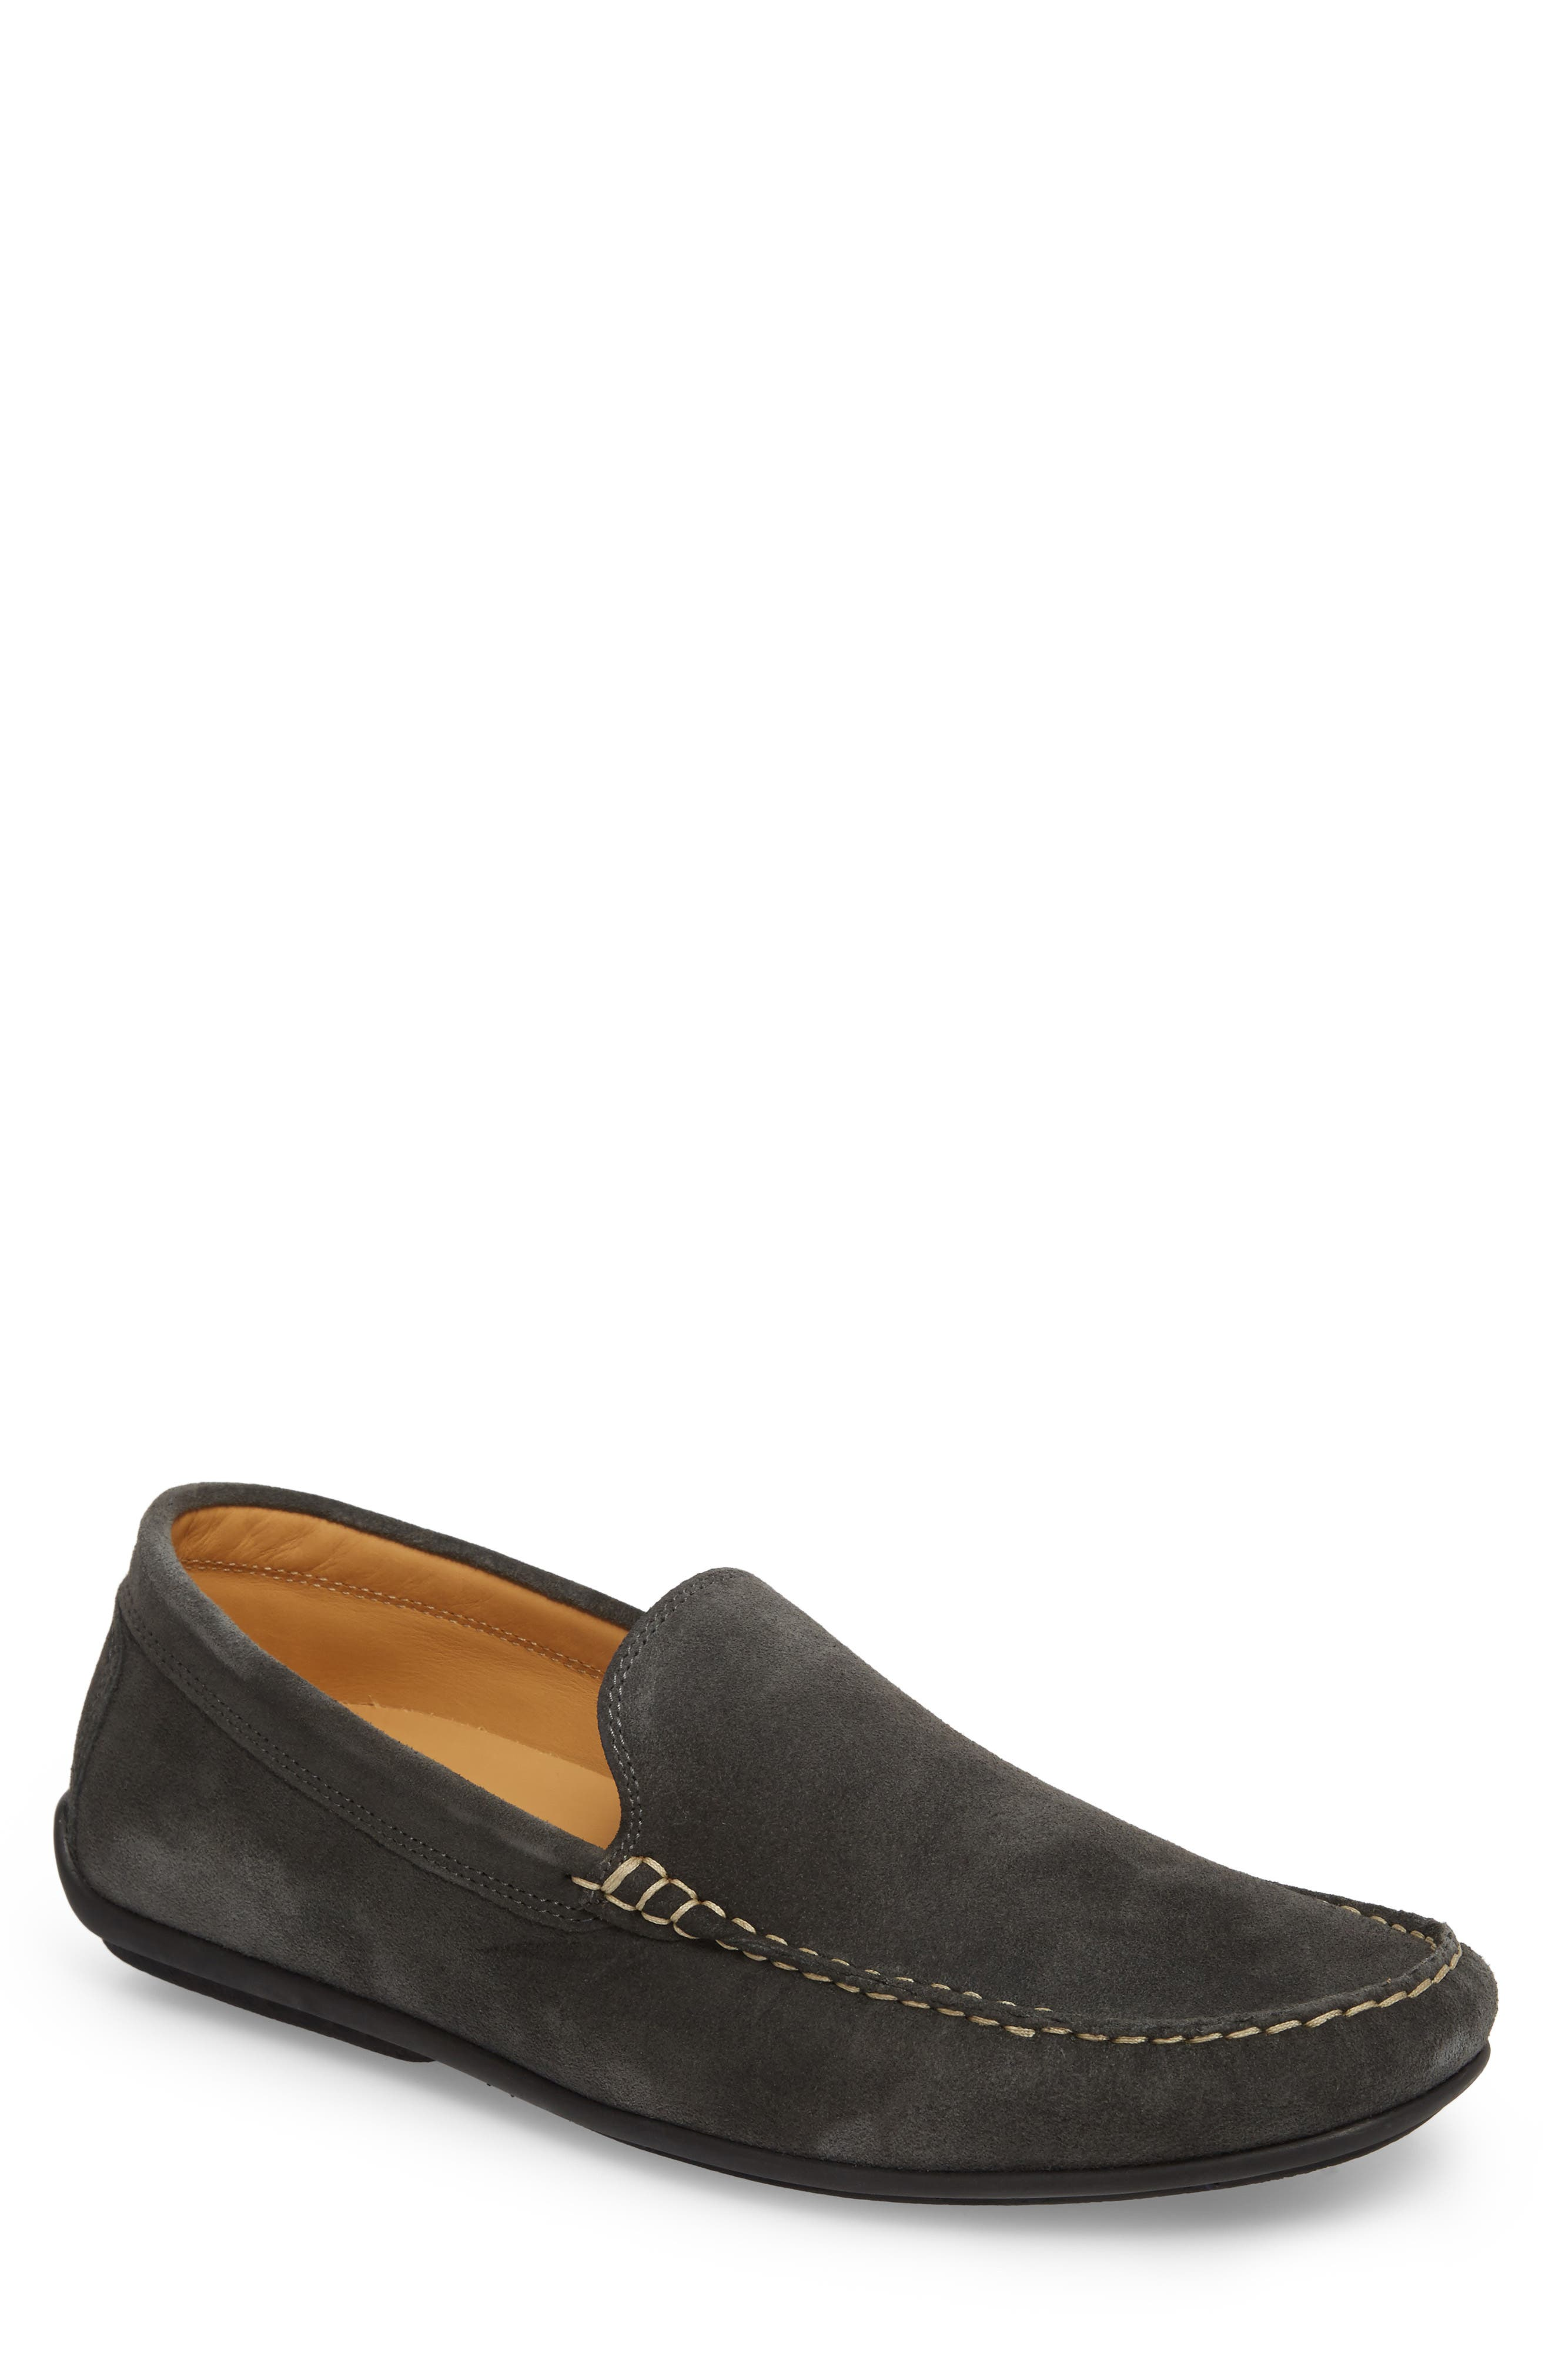 Greyhounds Loafer,                         Main,                         color, Grey Suede